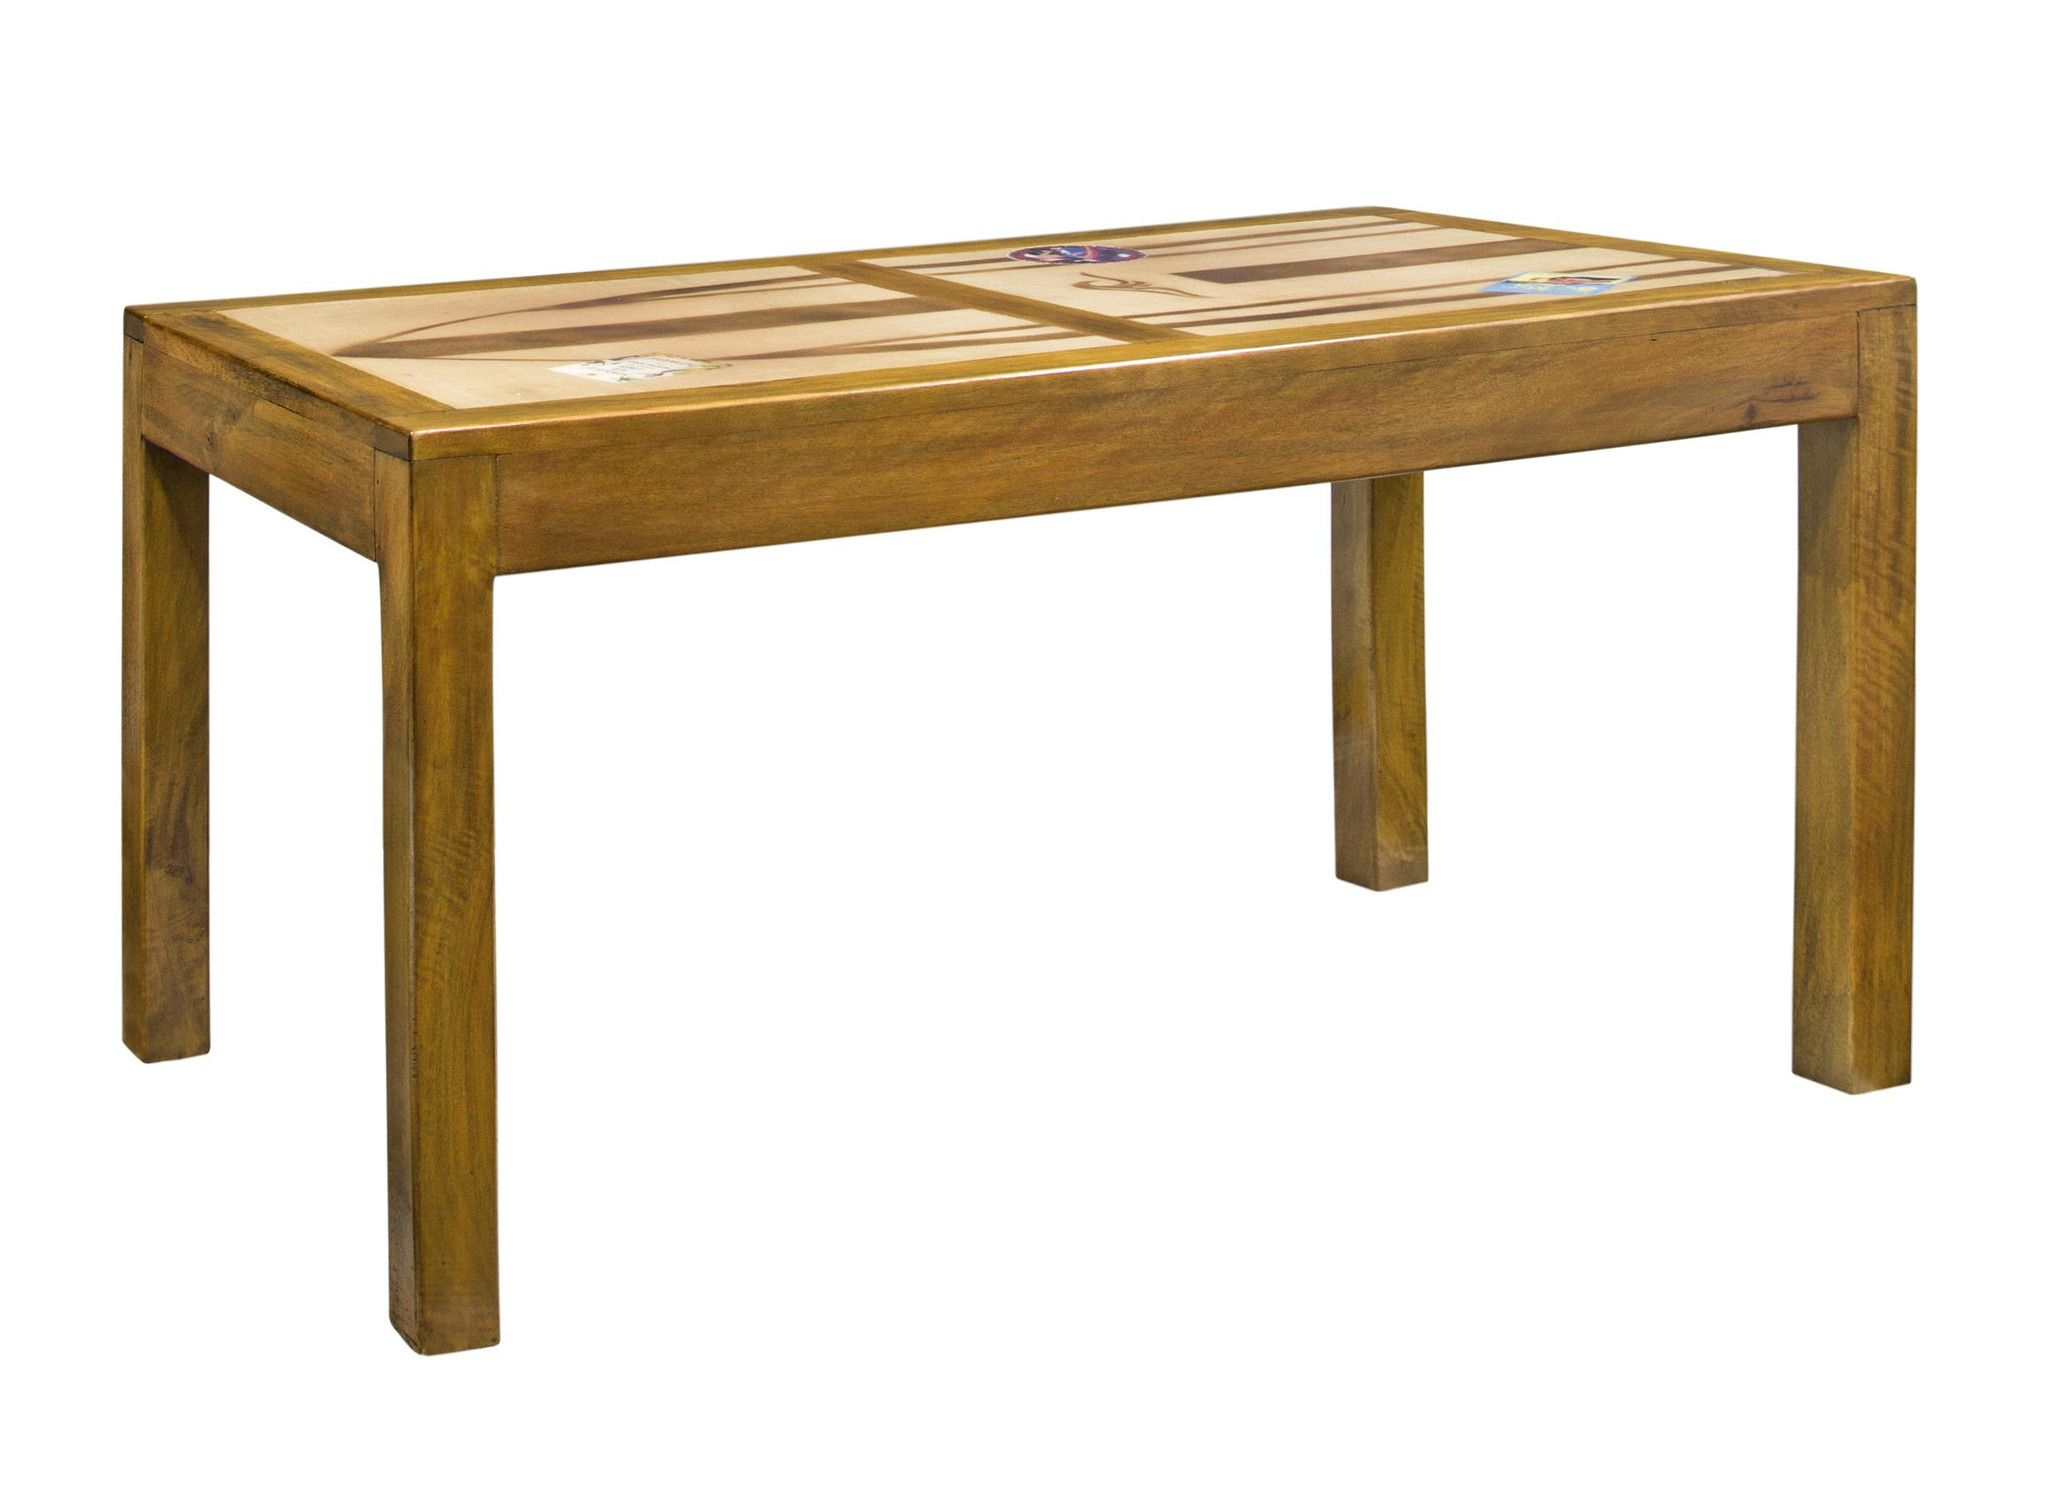 SURF TABLE (160)  $499.00